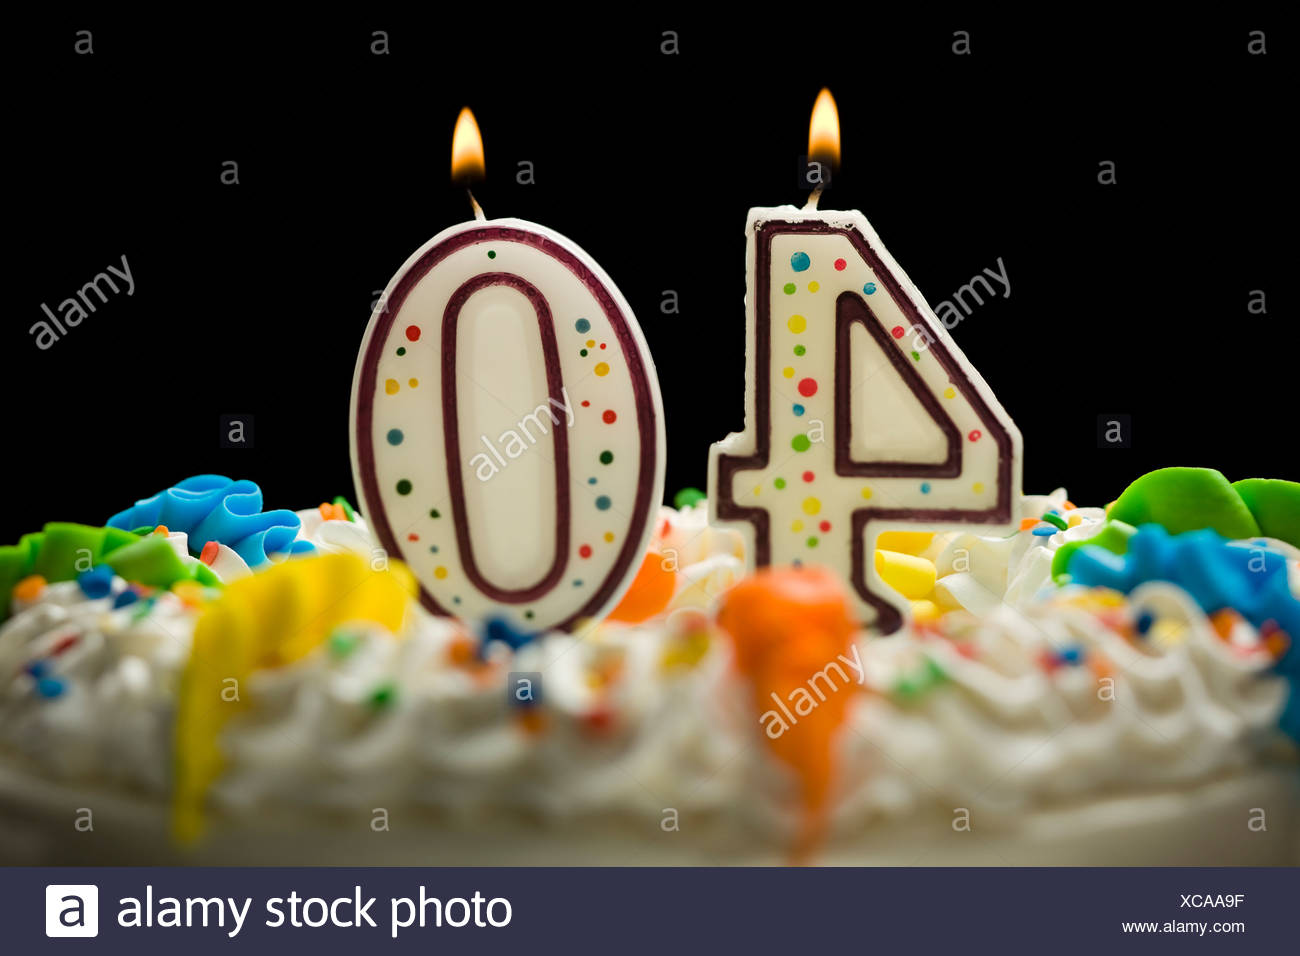 Birthday Cake With Candles That Say 40 Stock Photo 282969387 Alamy